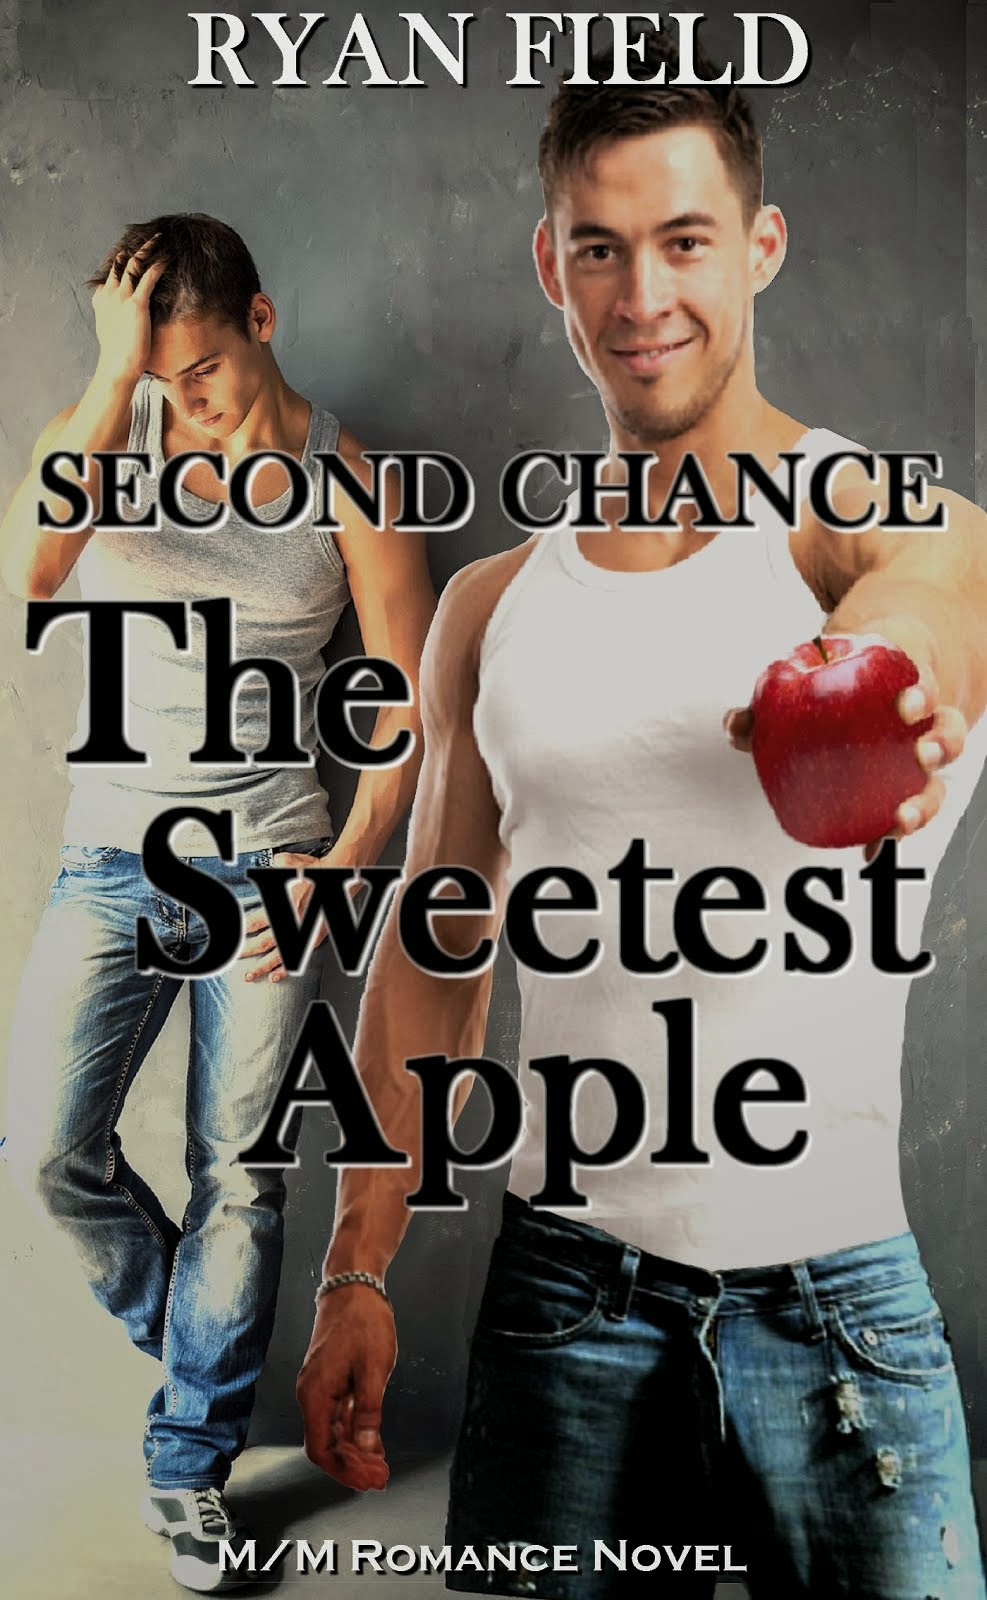 Second Chance: The Sweetest Apple